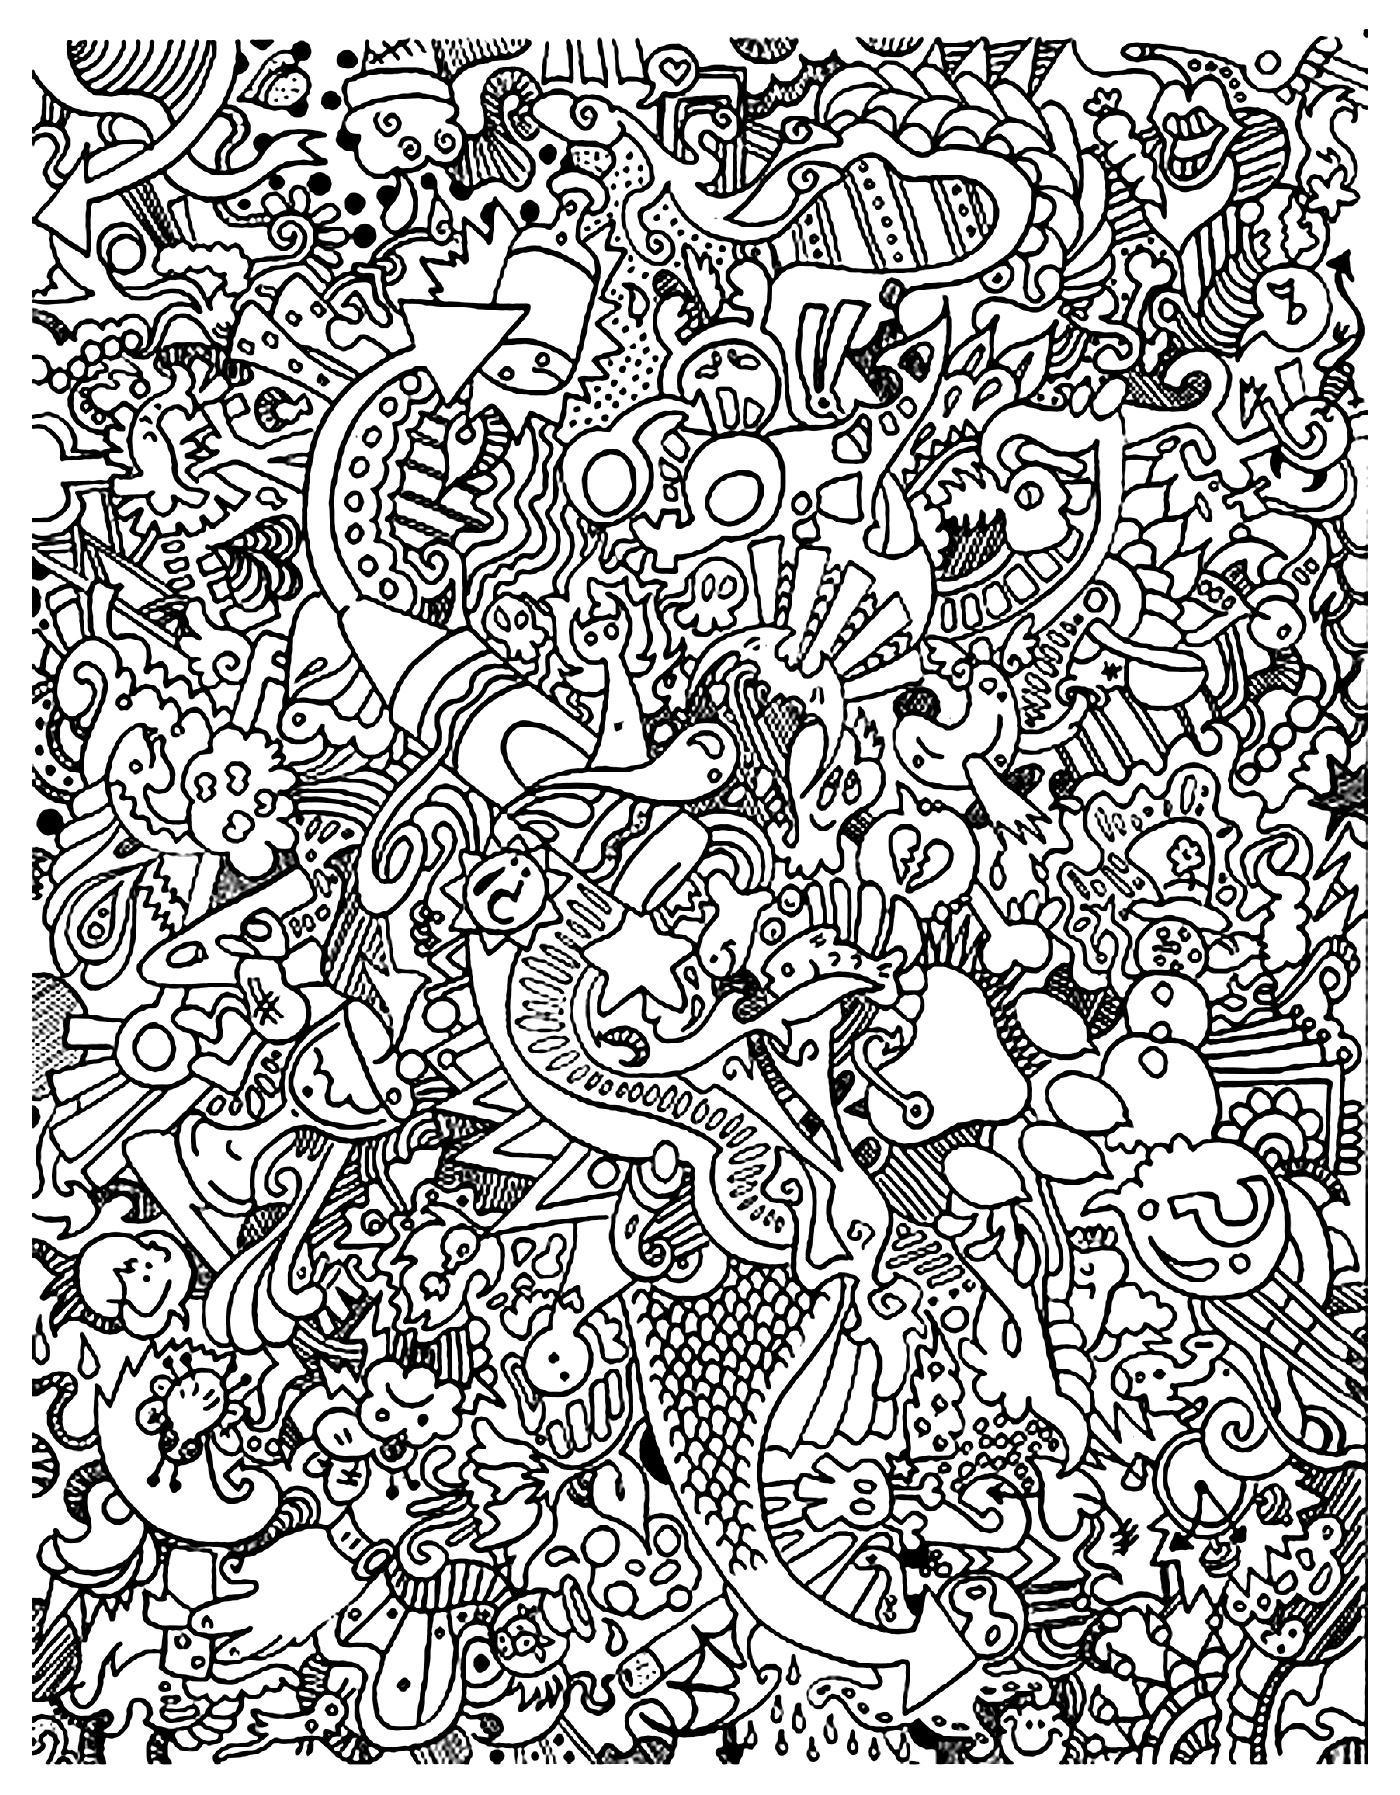 free doodle art to print and color free doodle art coloring pages coloring home free to art color doodle and print